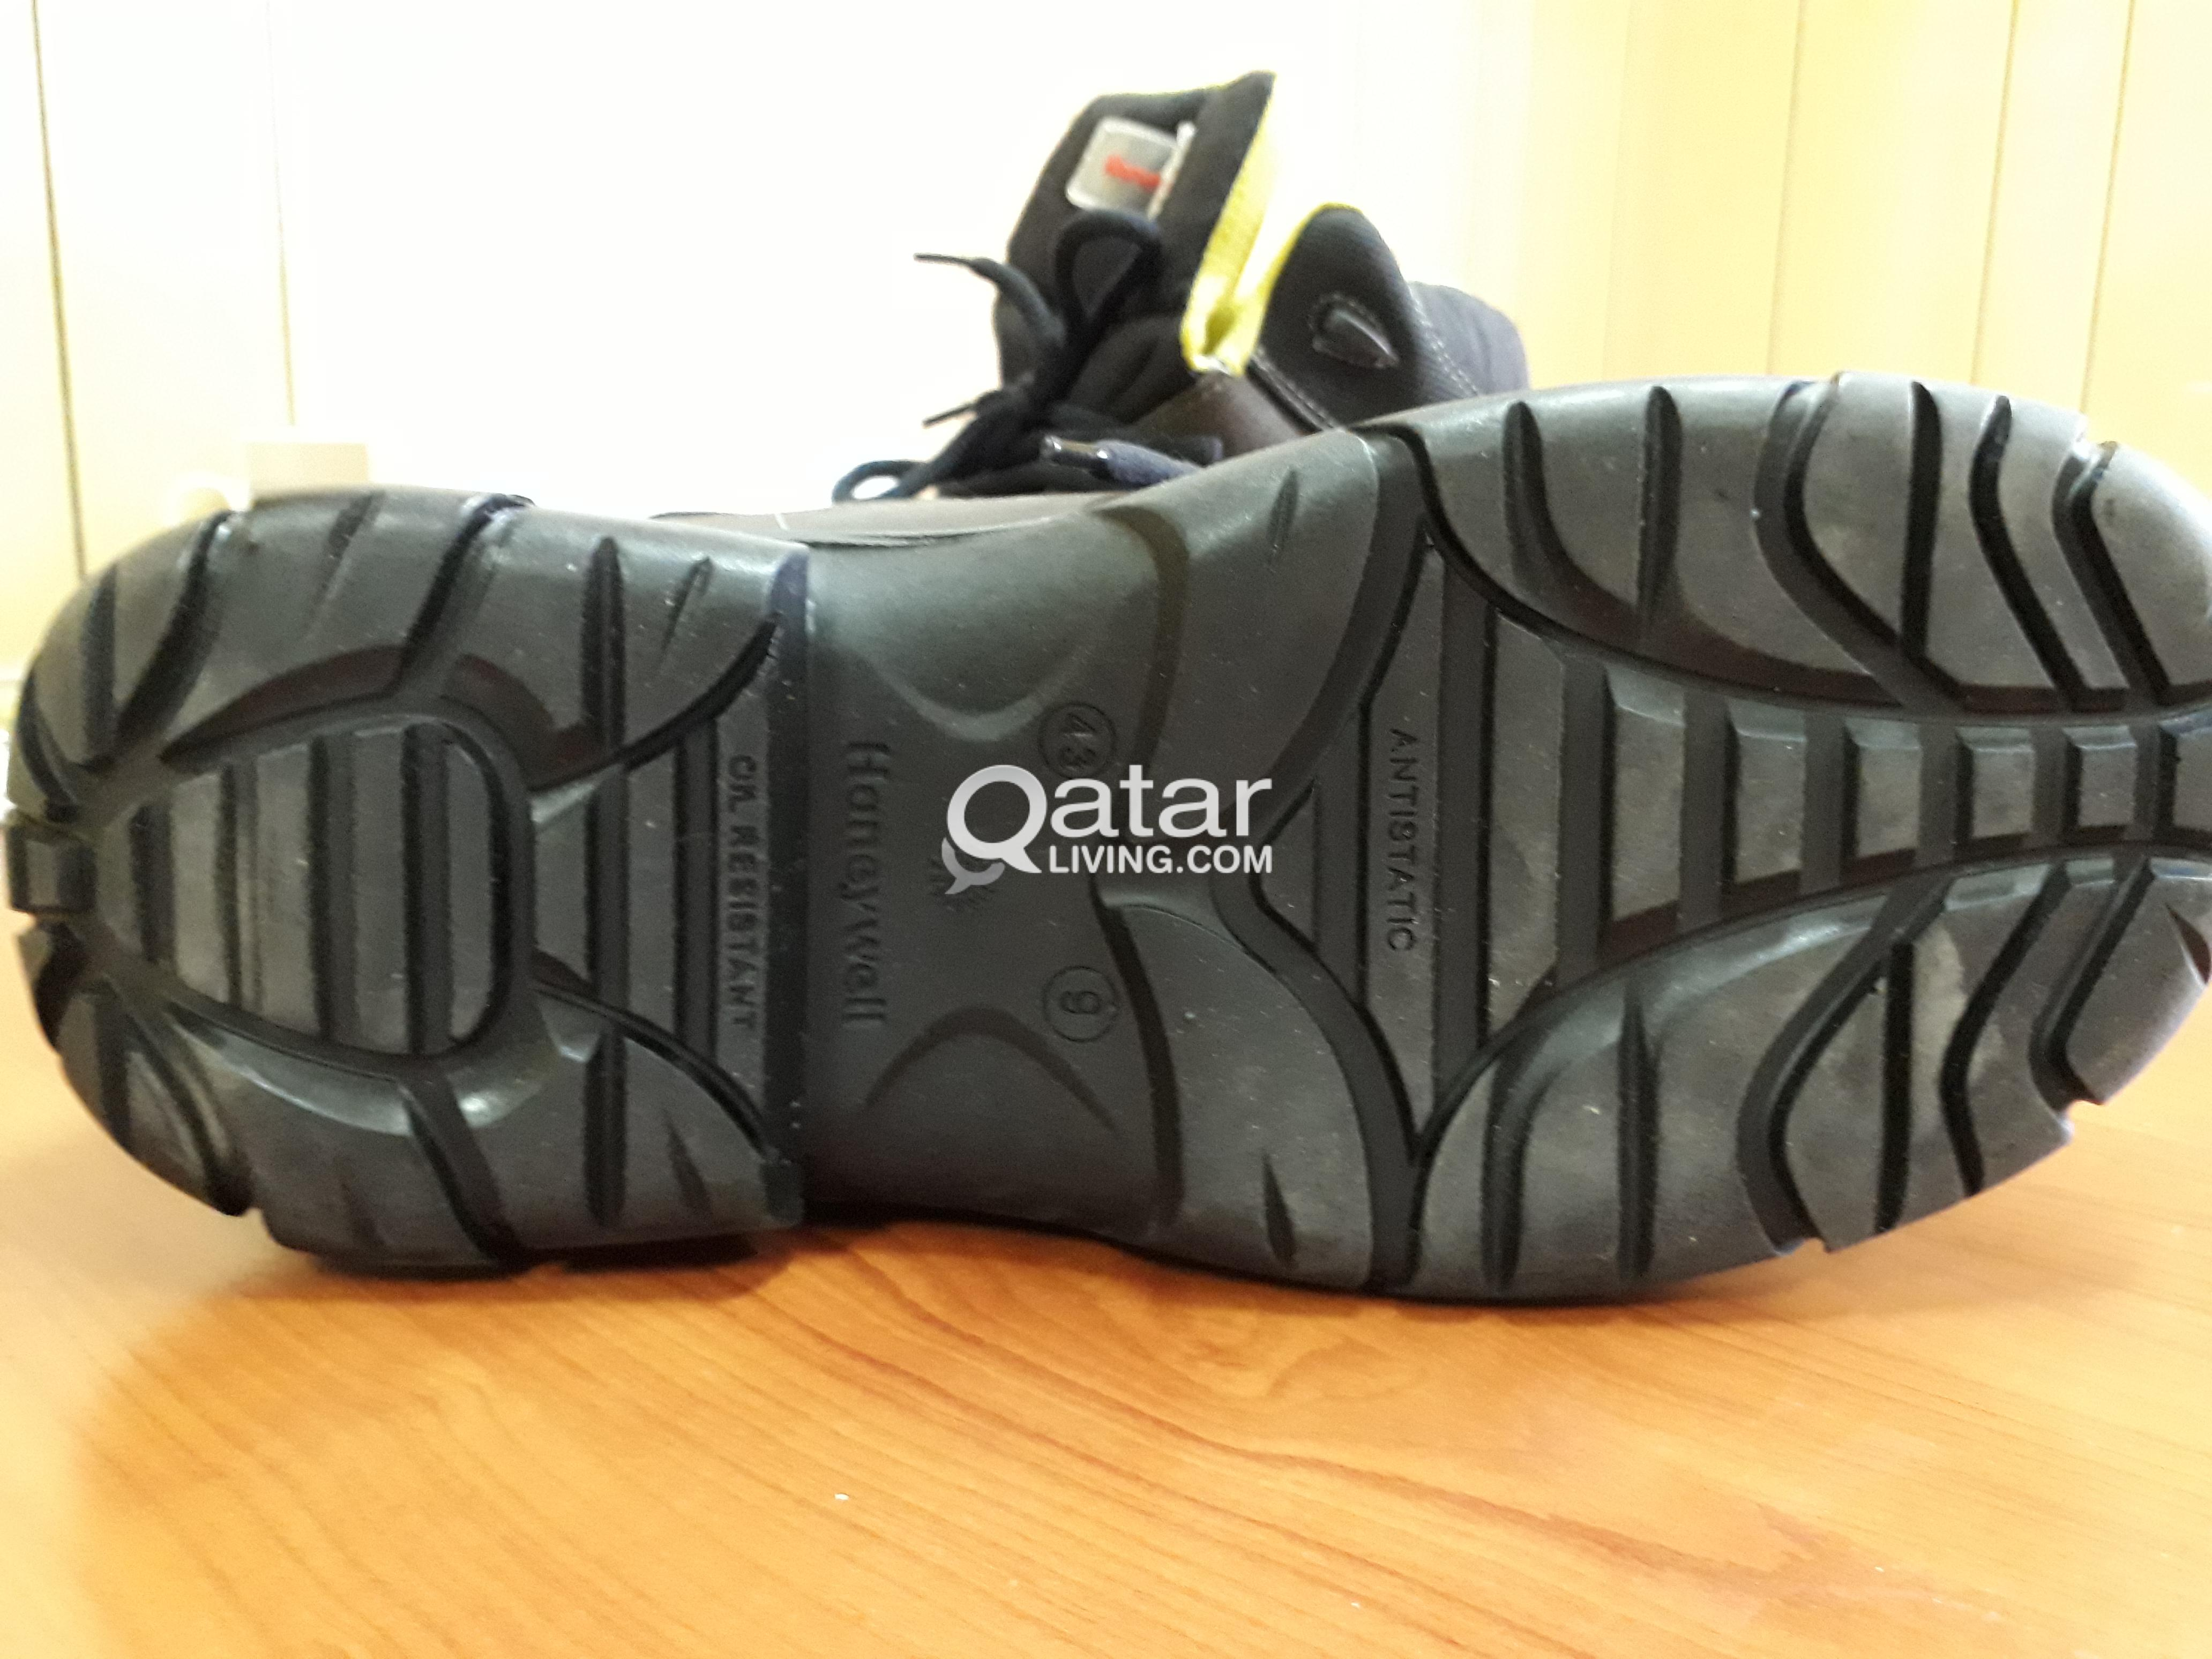 HONEYWELL SAFETY SHOES 43 SIZE NEW 100QR 70369039 | Qatar Living